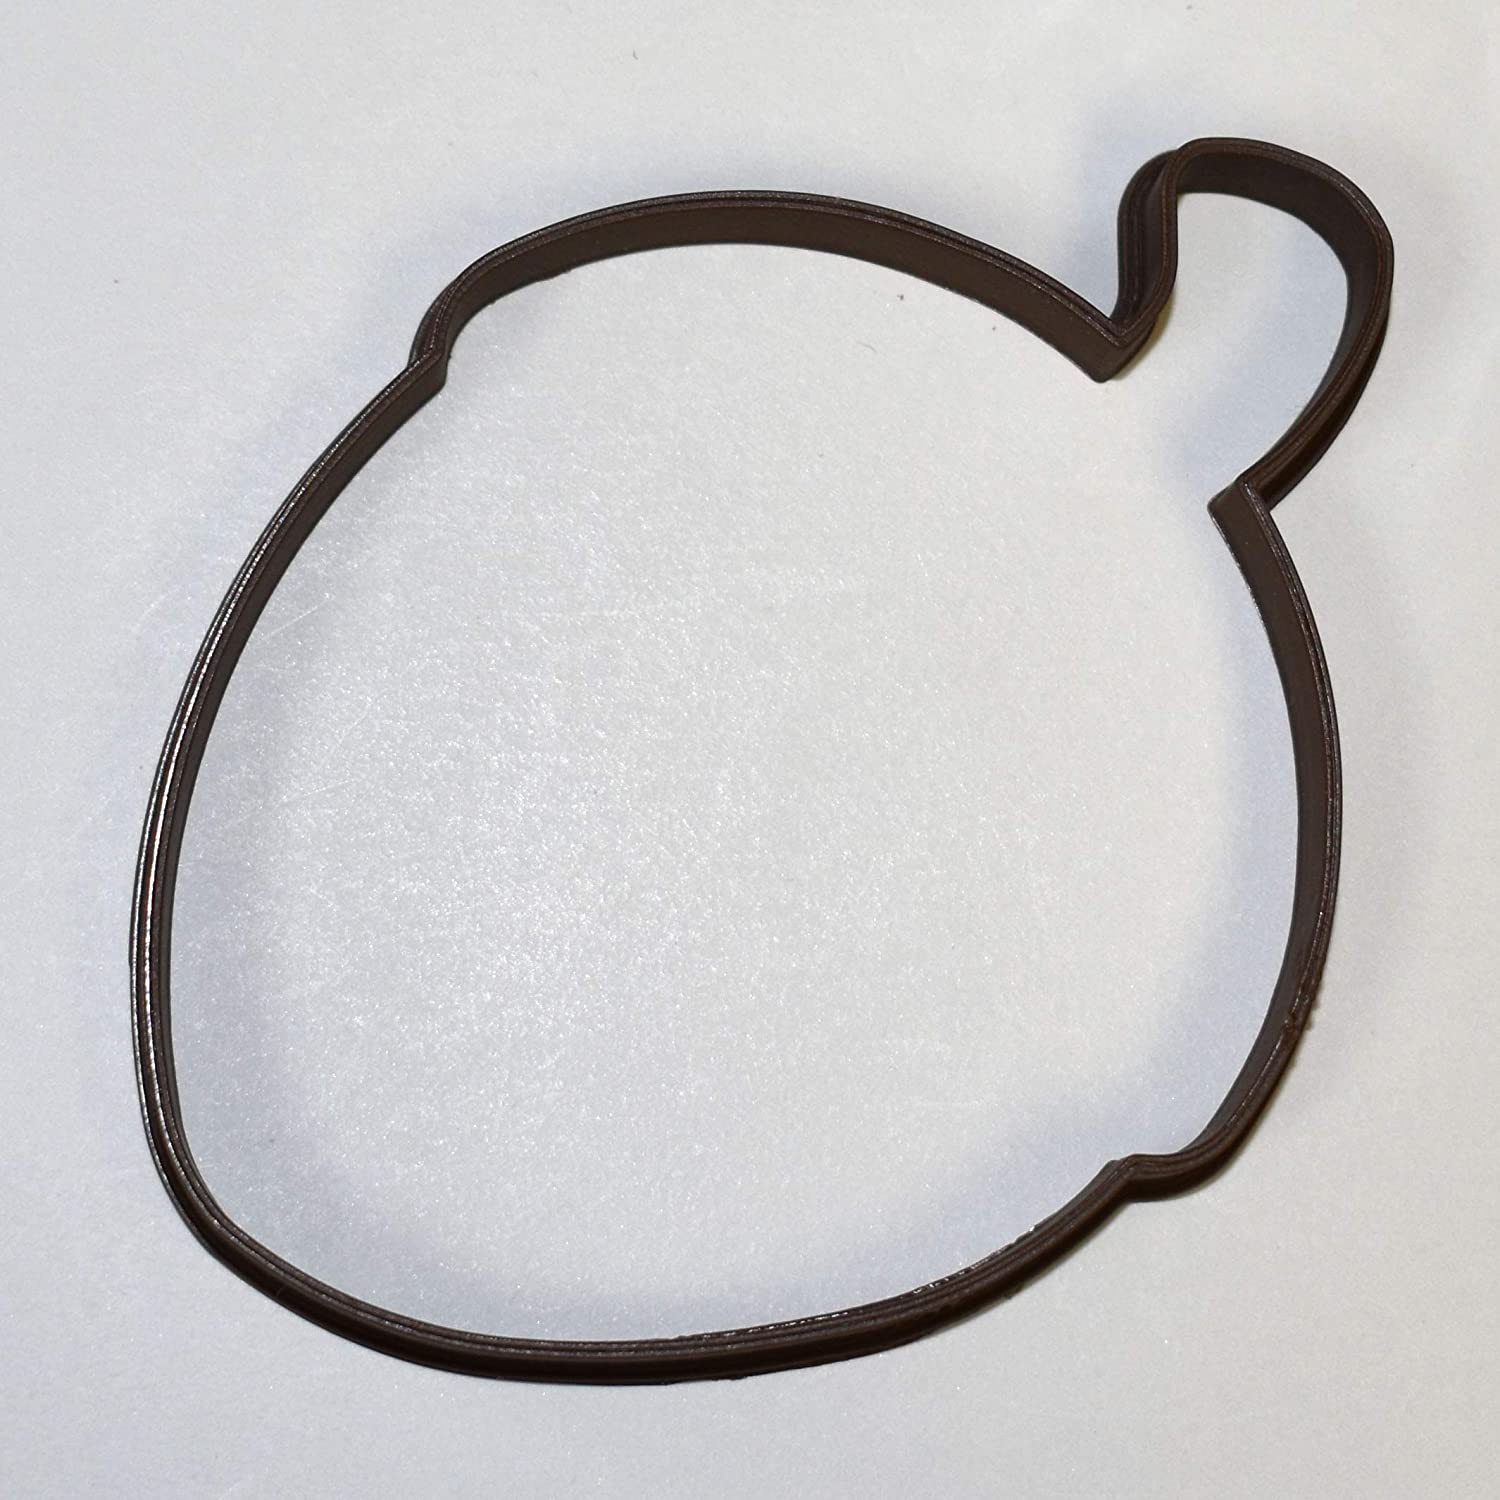 Acorn Nut Cookie Cutter Biscuit Pastry Fondant Stencil Silhouette Seed Oak NA03